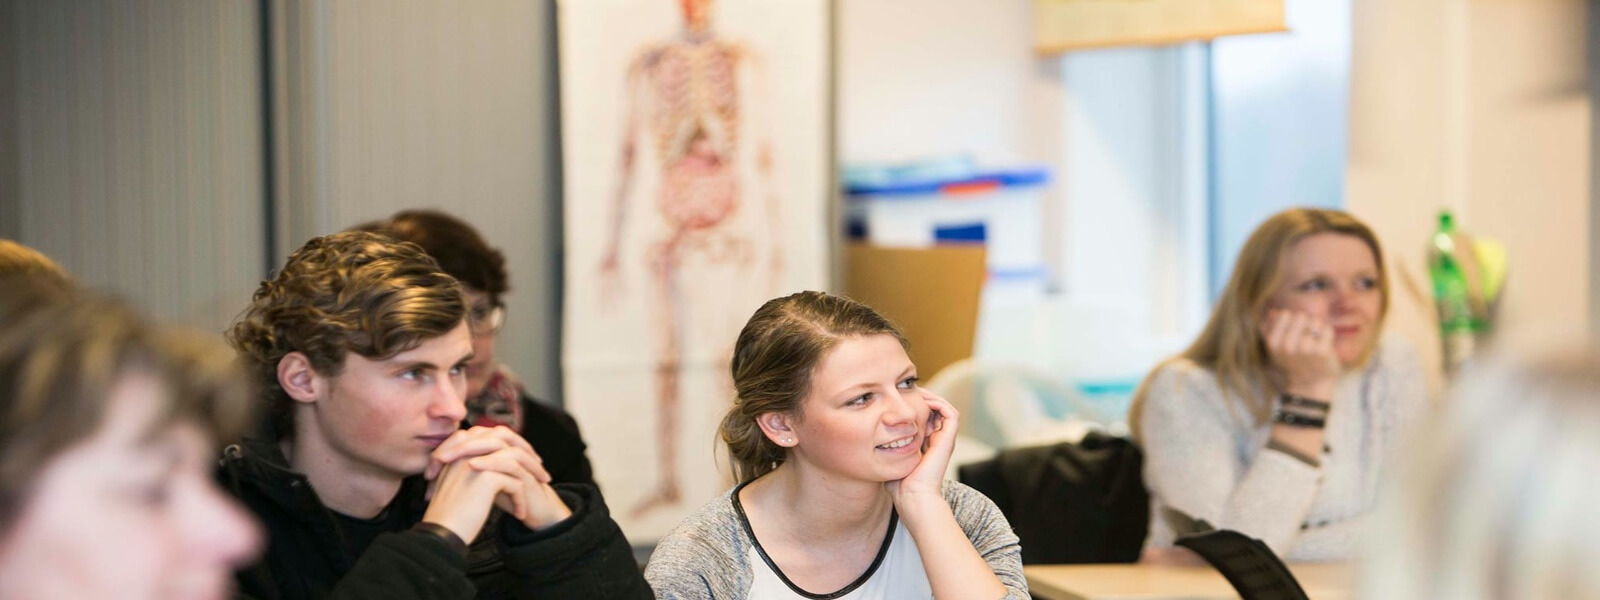 bachelor-physiotherapy-studyinholland-universitiesofappliedsciences-saxion-enschede-holland